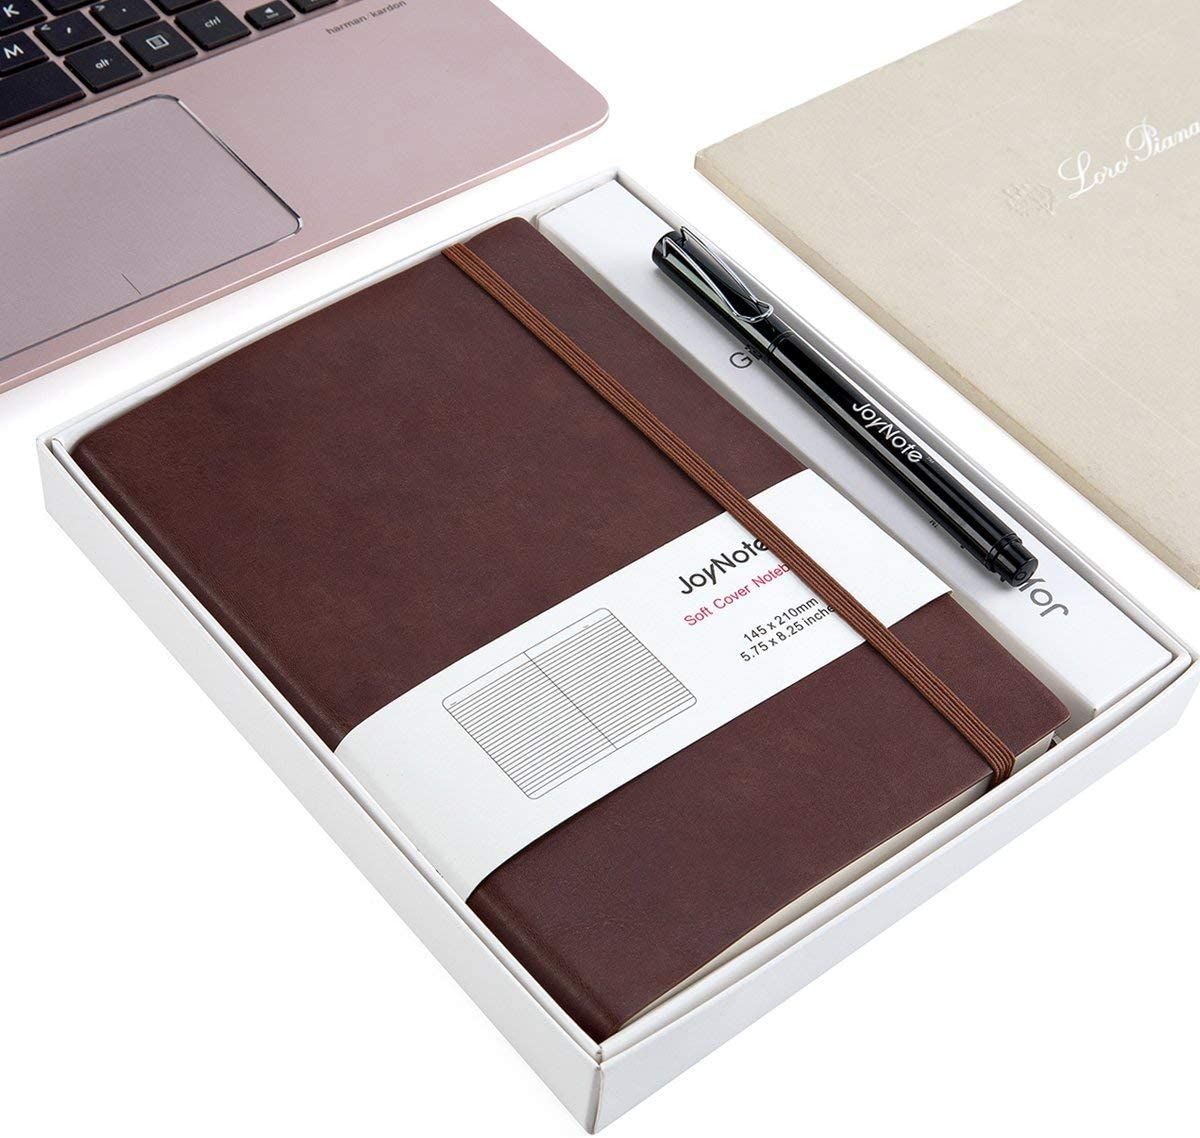 JoyNote A5 Classic Journal Notebook, College Ruled Notebooks with Pen Loop, Thick Paper Small Notebook, 96 Sheets/192 Pages, 5.75 x 8.25 inches, Brown